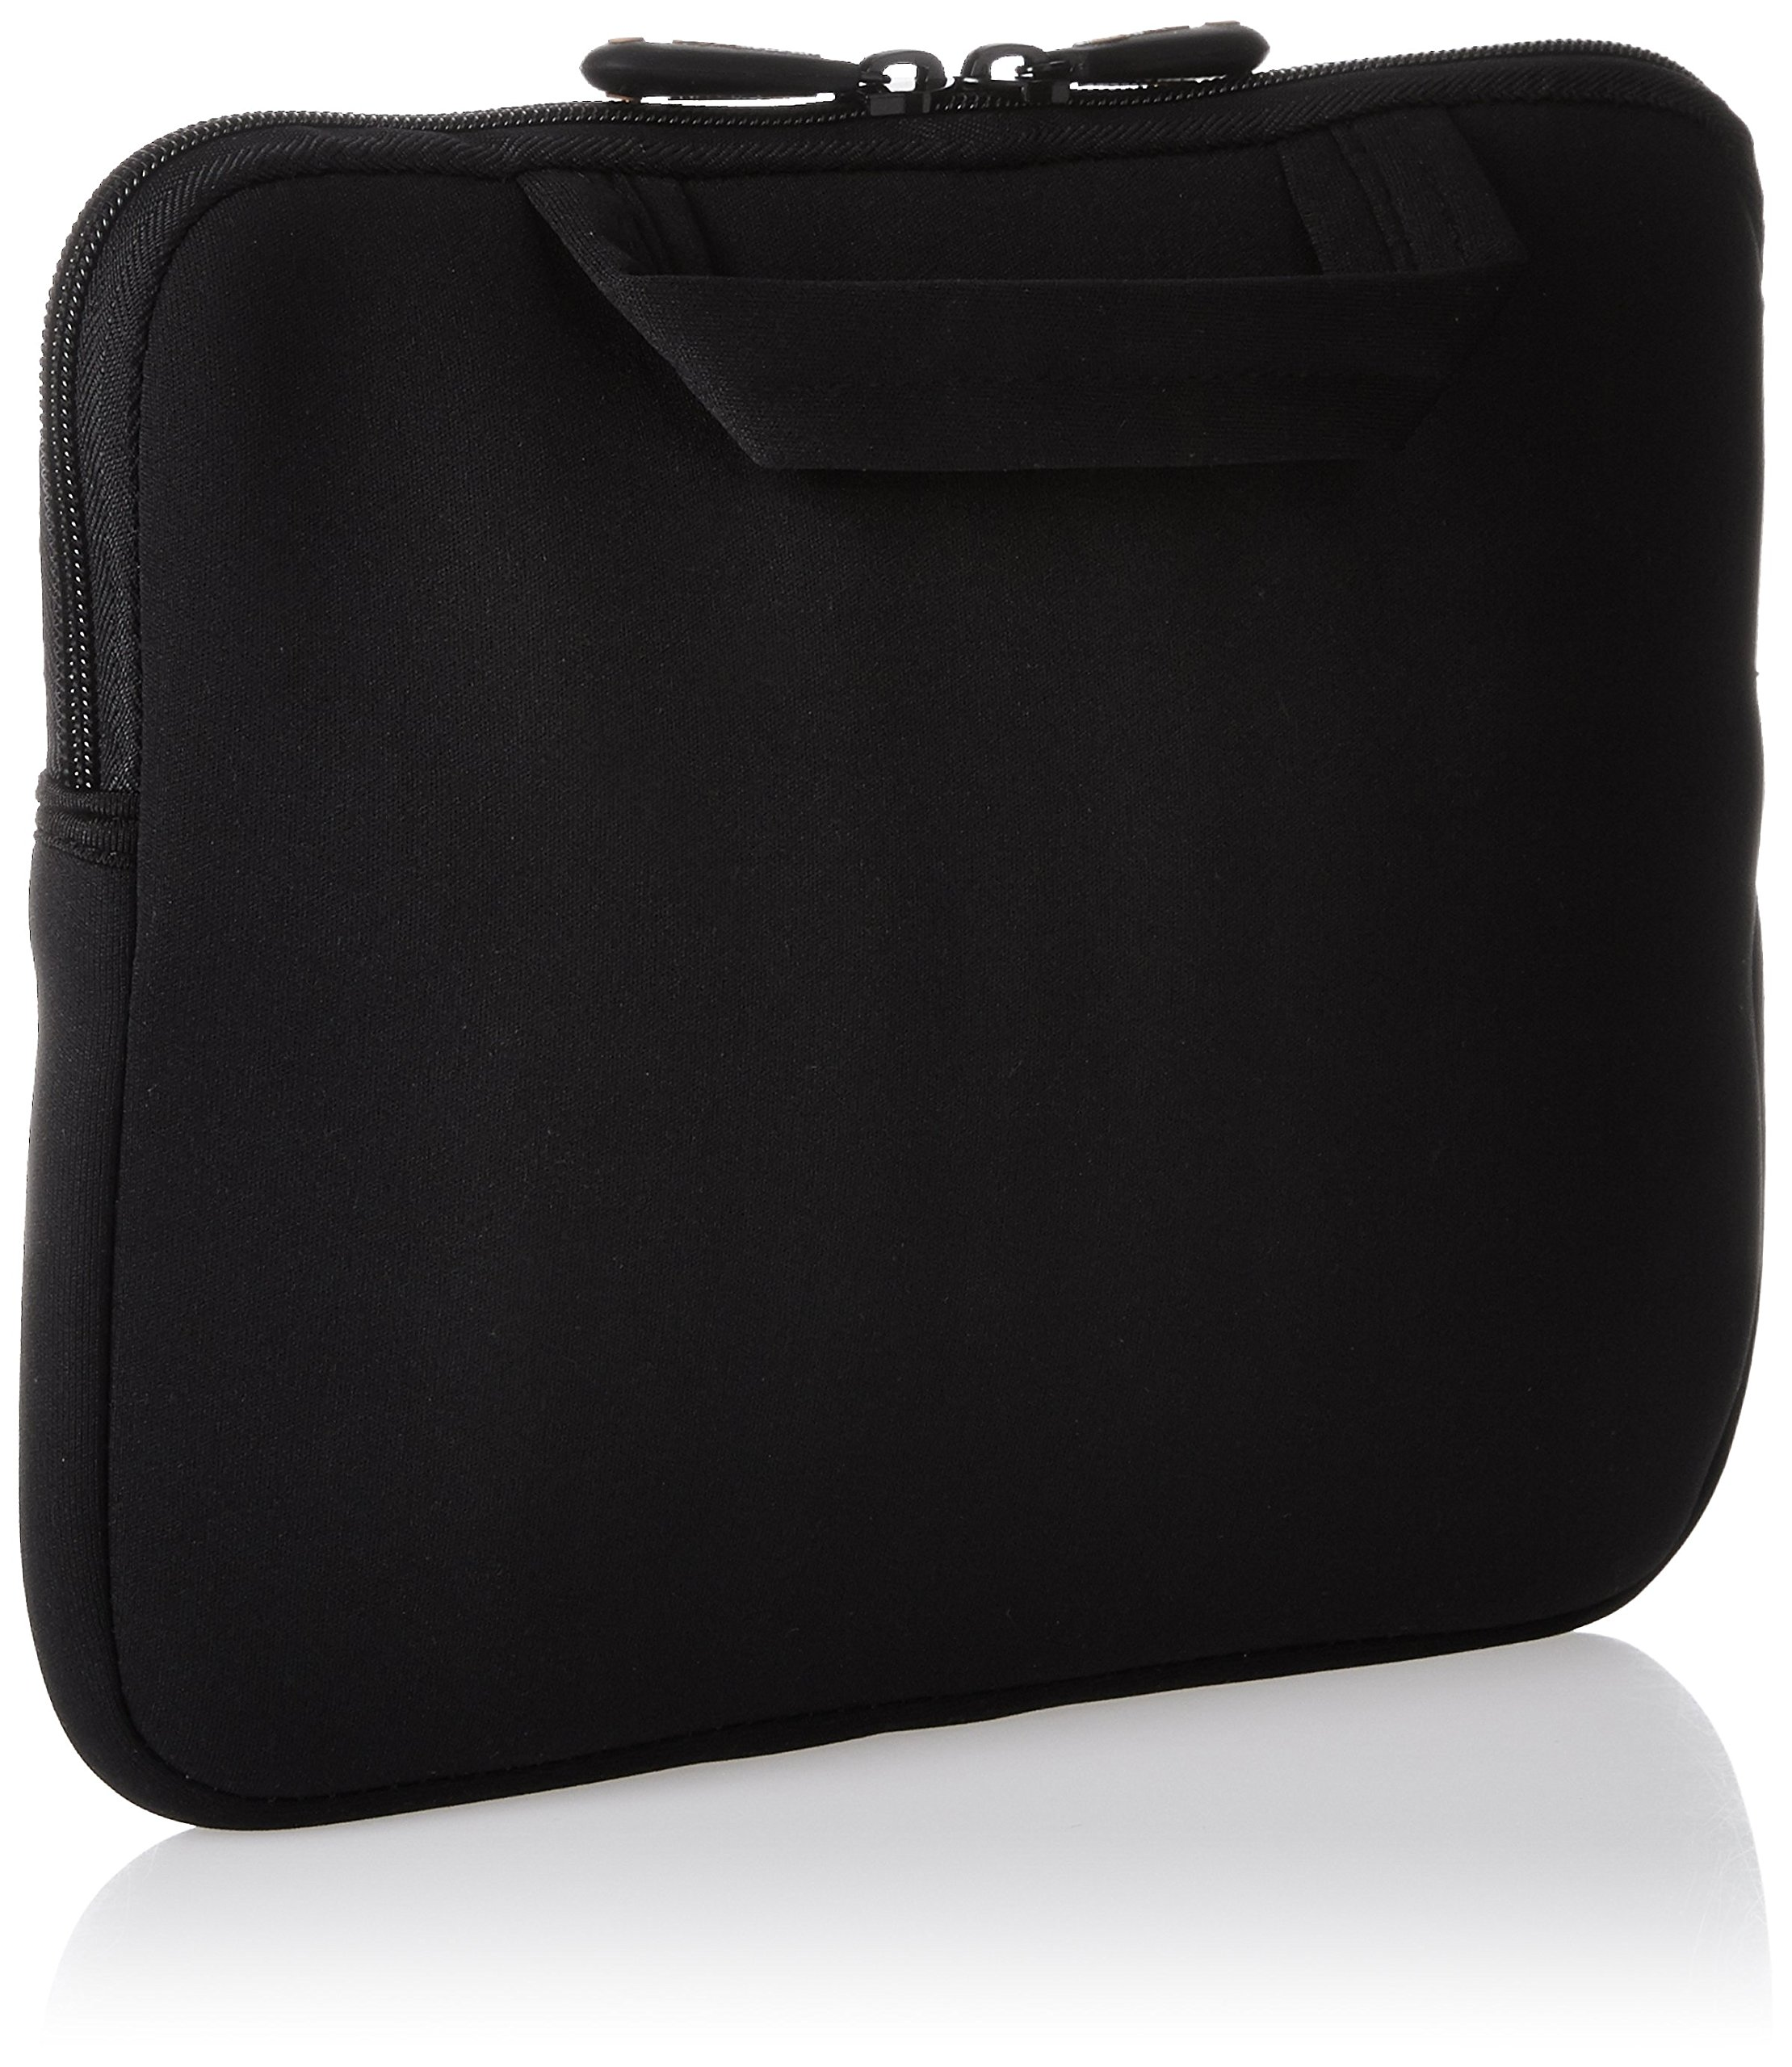 AmazonBasics iPad Air and Netbook Bag with Handle Fits 7 to 10-Inch Tablets (Black) by AmazonBasics (Image #3)